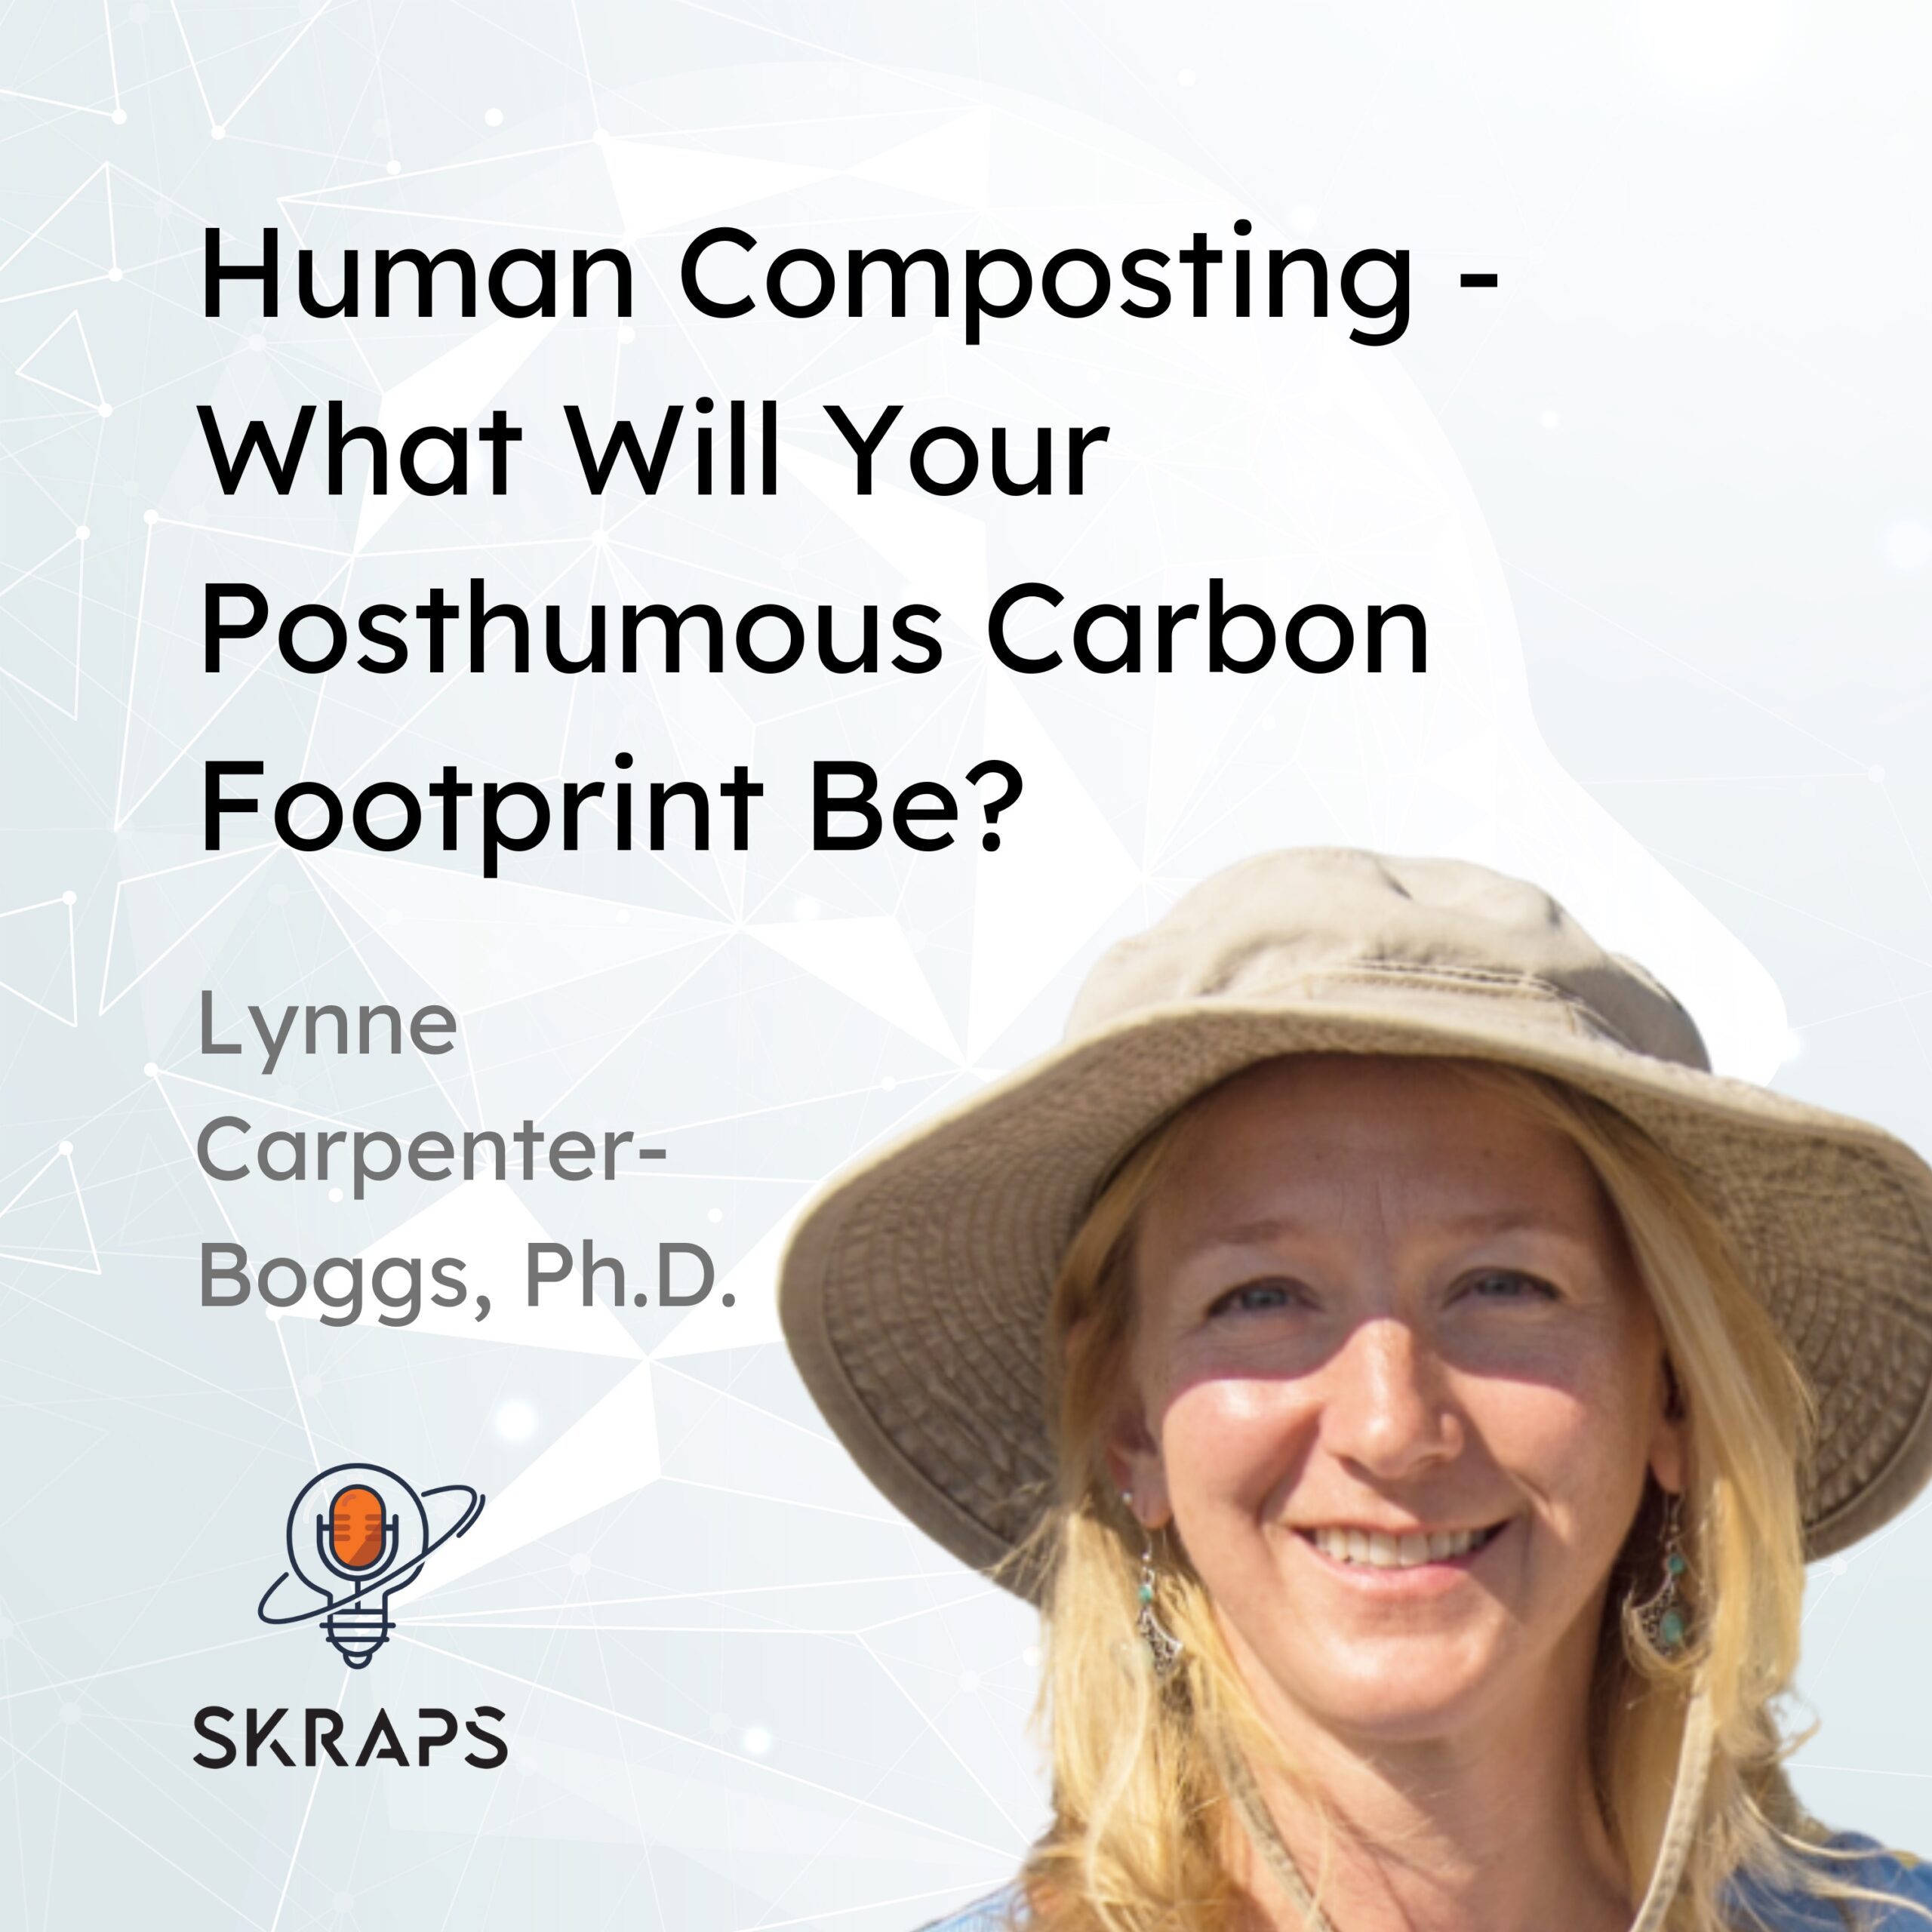 Human Composting – What Will Your Posthumous Carbon Footprint Be?